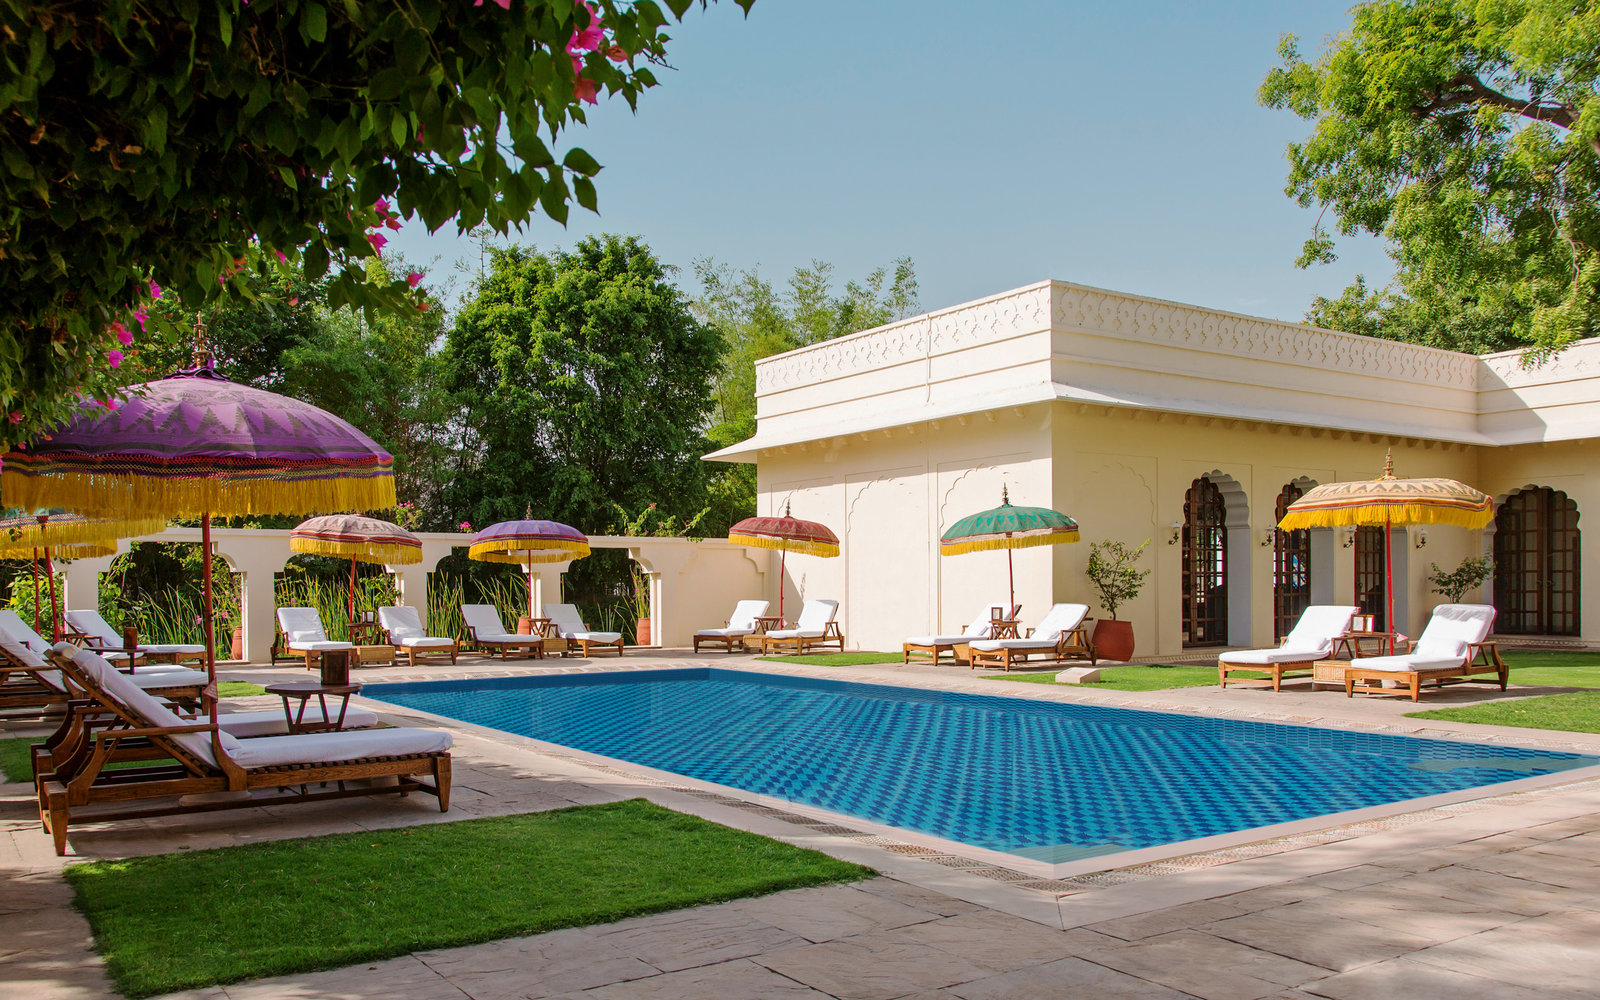 5. The Oberoi Vanyavilas, Ranthambhore, India